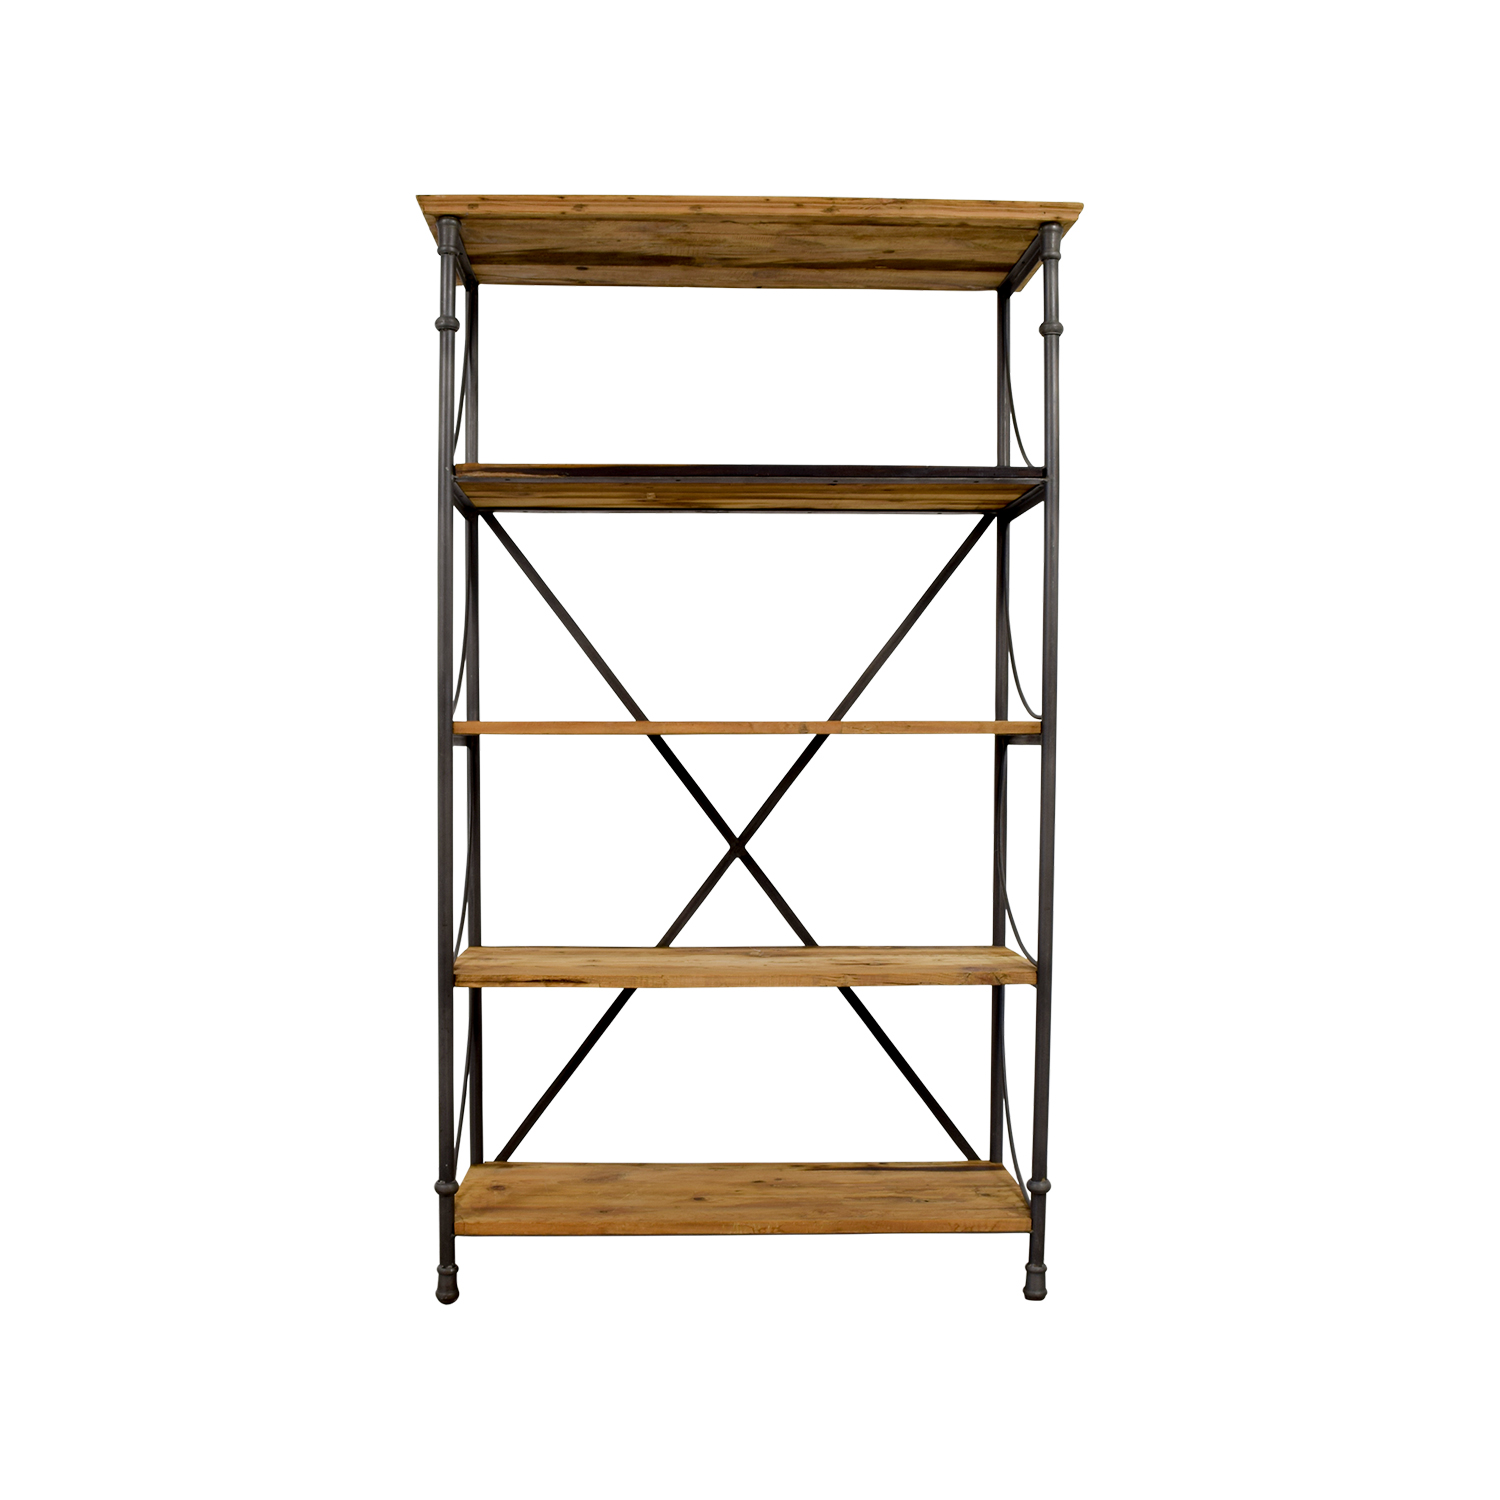 buy hudson goods reclaimed wood bookcase hudson goods - Reclaimed Wood Bookshelves